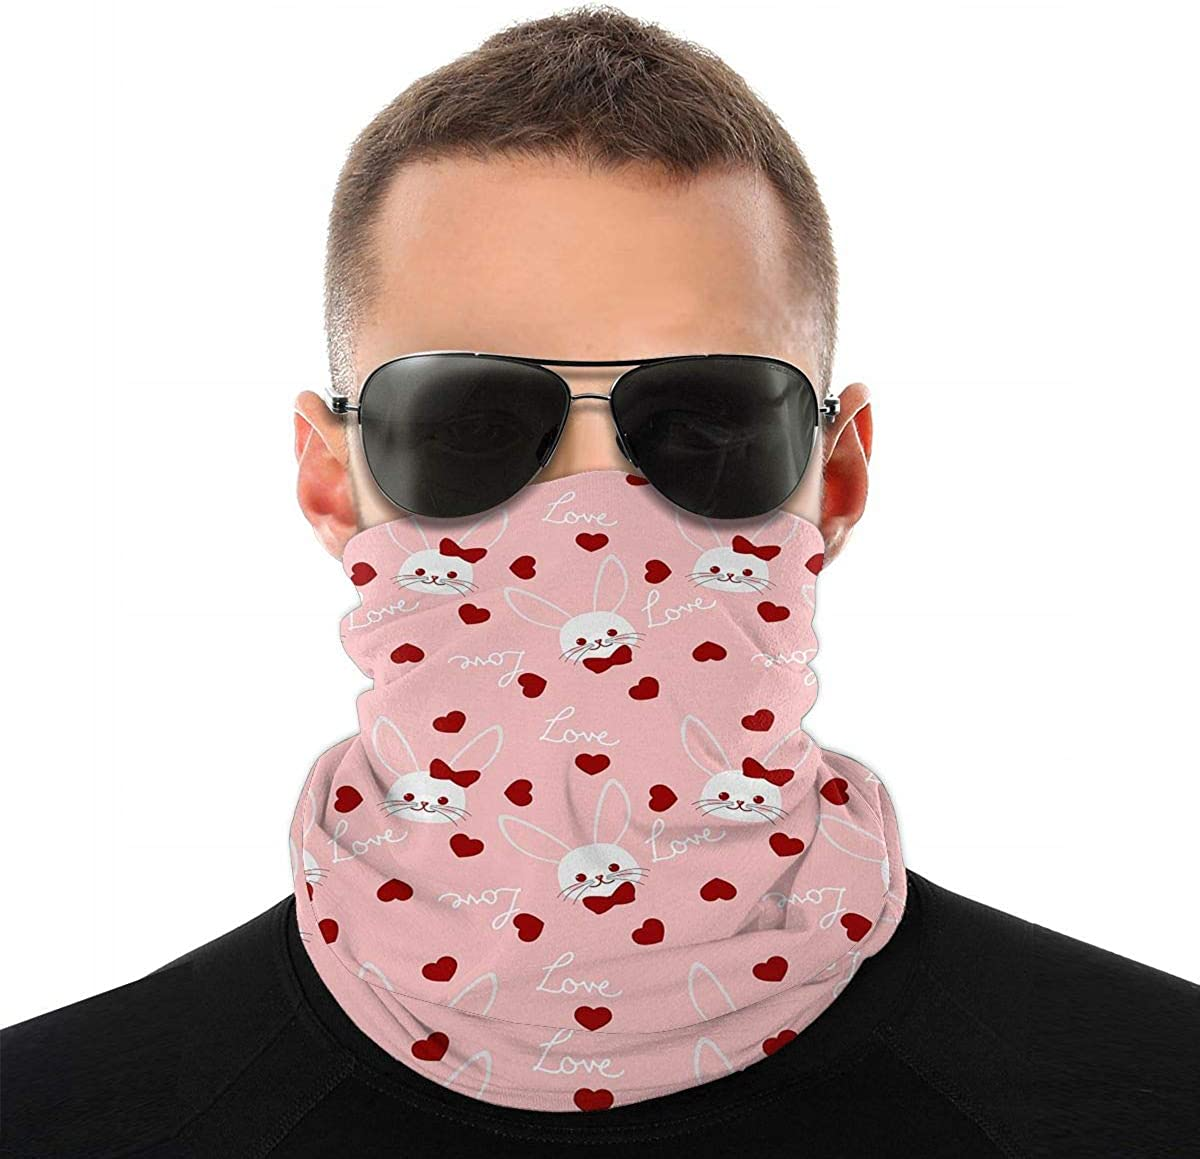 KiuLoam Love Hearts with Bunny Seamless Face Mask Bandanas Neck Gaiter for Men and Women, Multifunction Headband Scarf for Dust, Outdoors, Sports